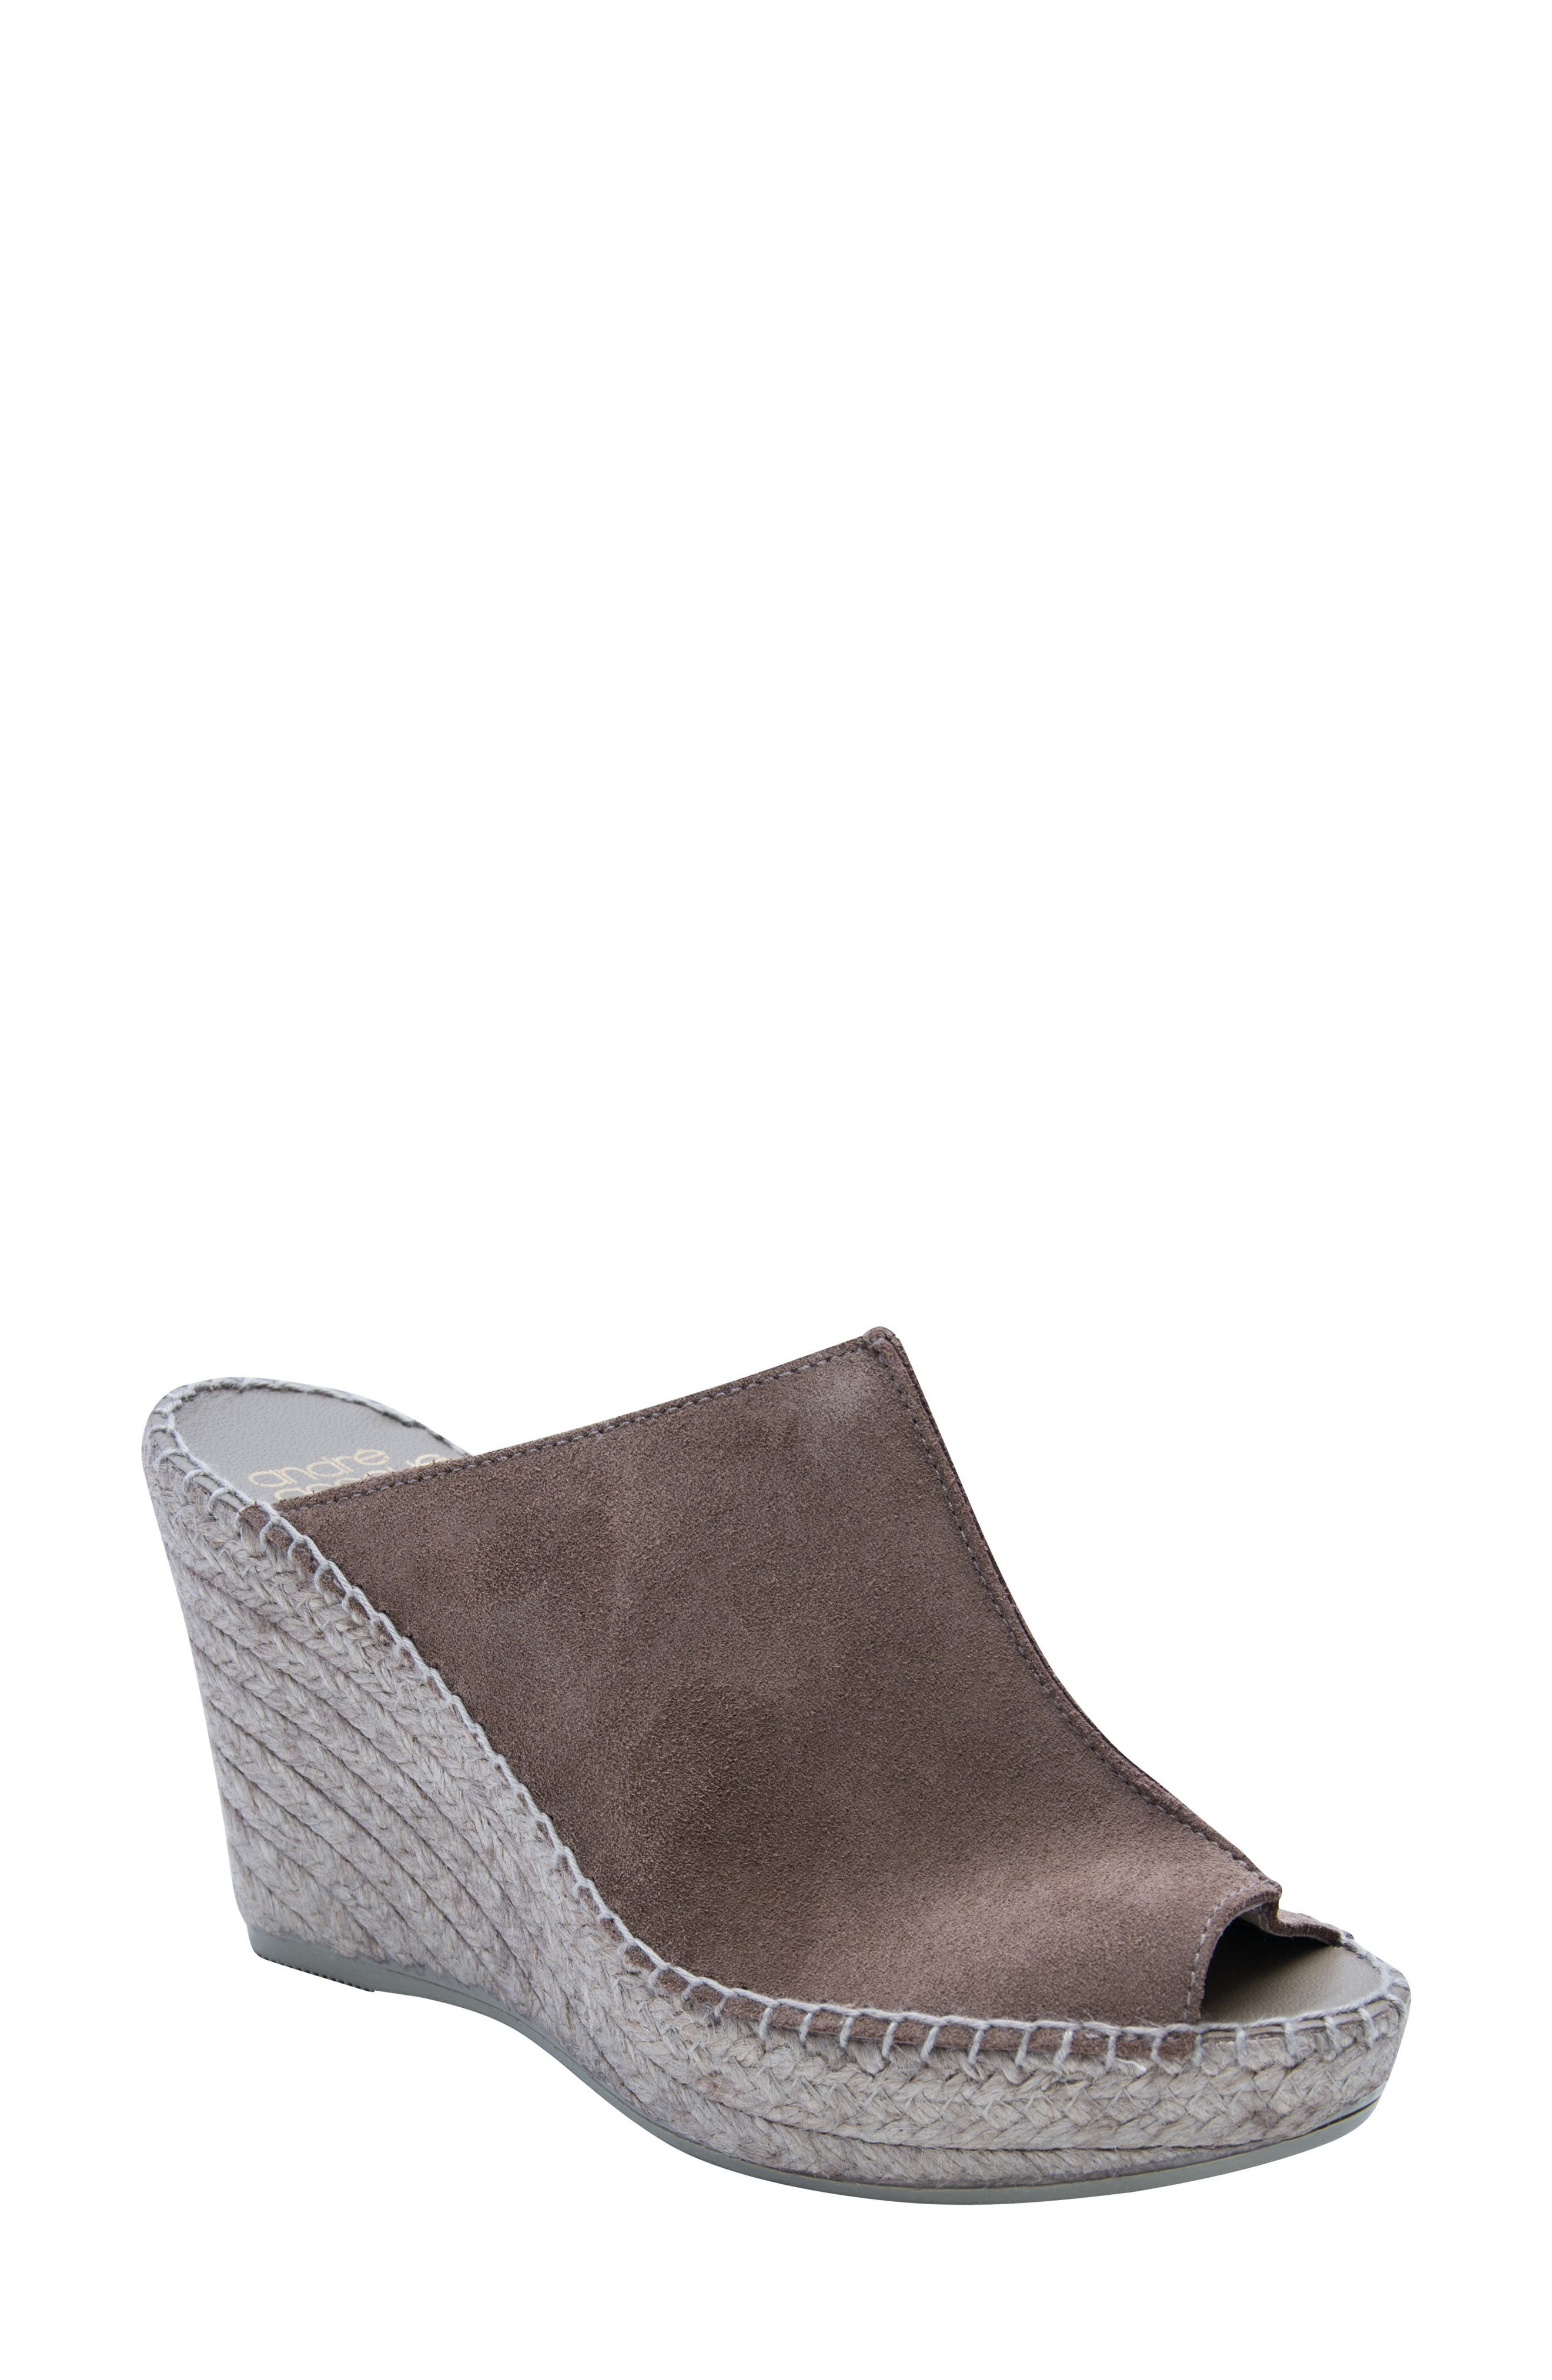 Andre Assous Cici Espadrille Wedge, Brown